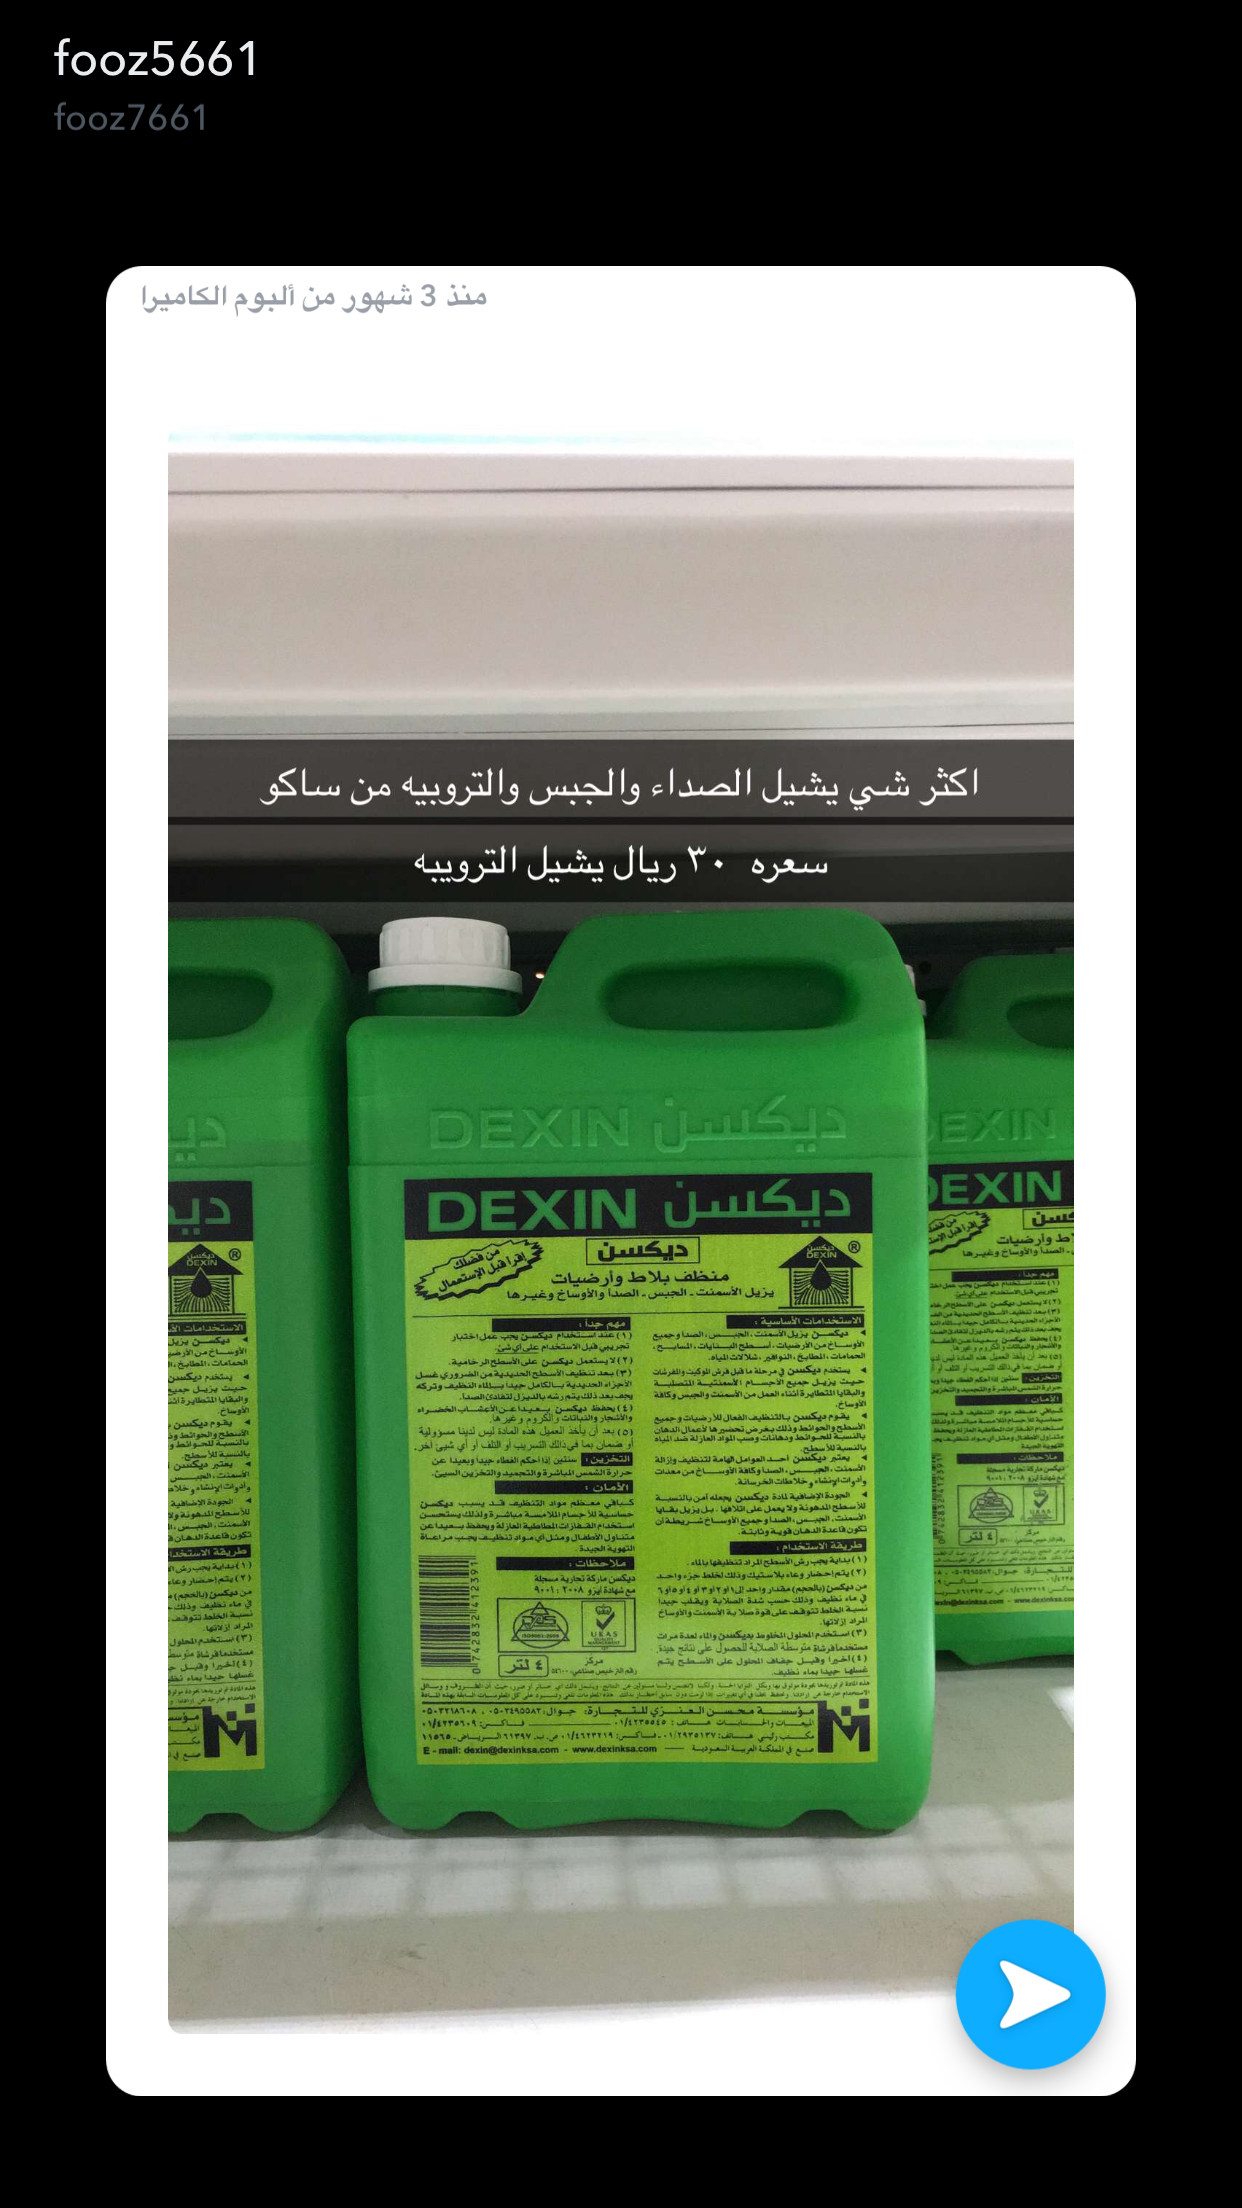 Pin By Fofo 54321 On ٠١٩٢٨ Cleaning